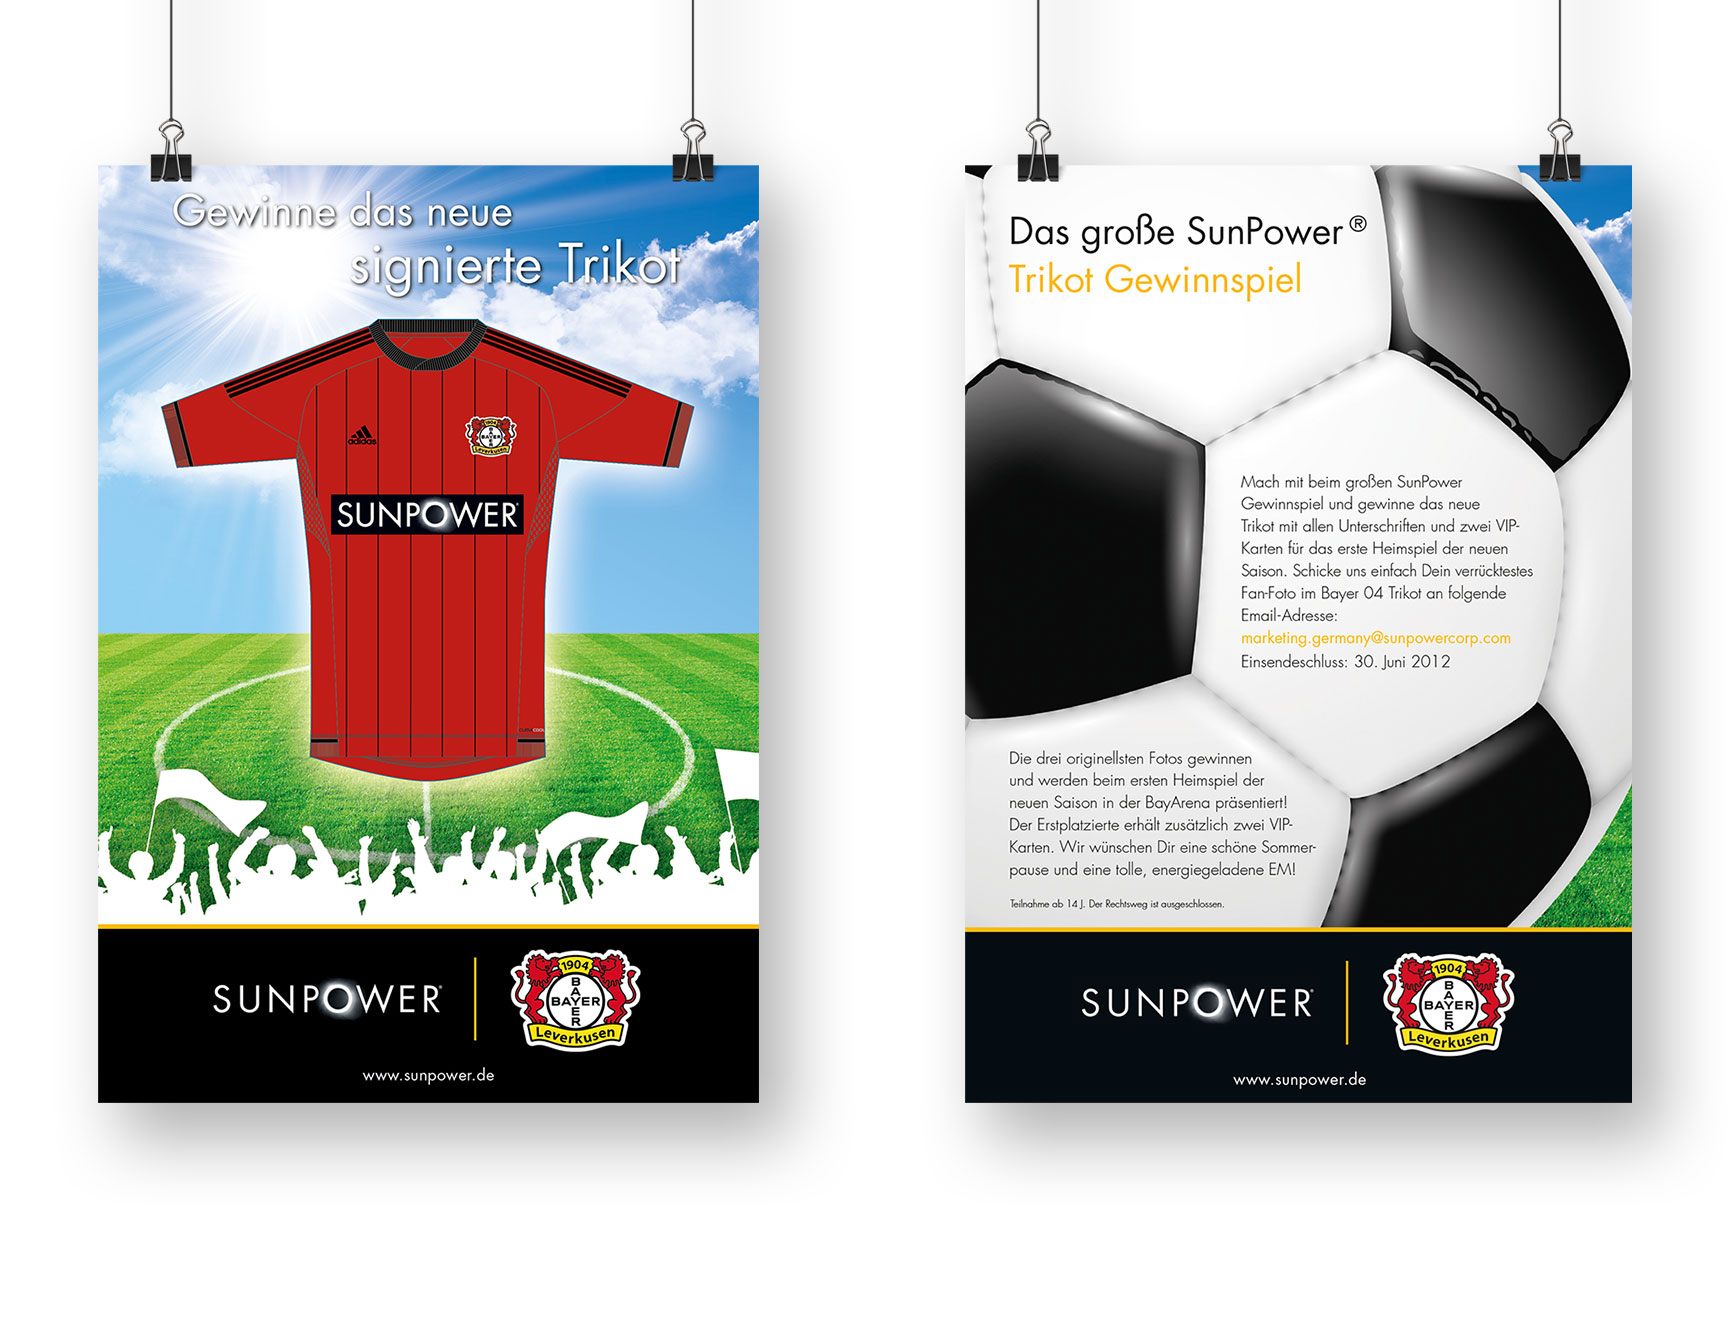 SunPower_Bayer_04_Leverkusen_mobile-1